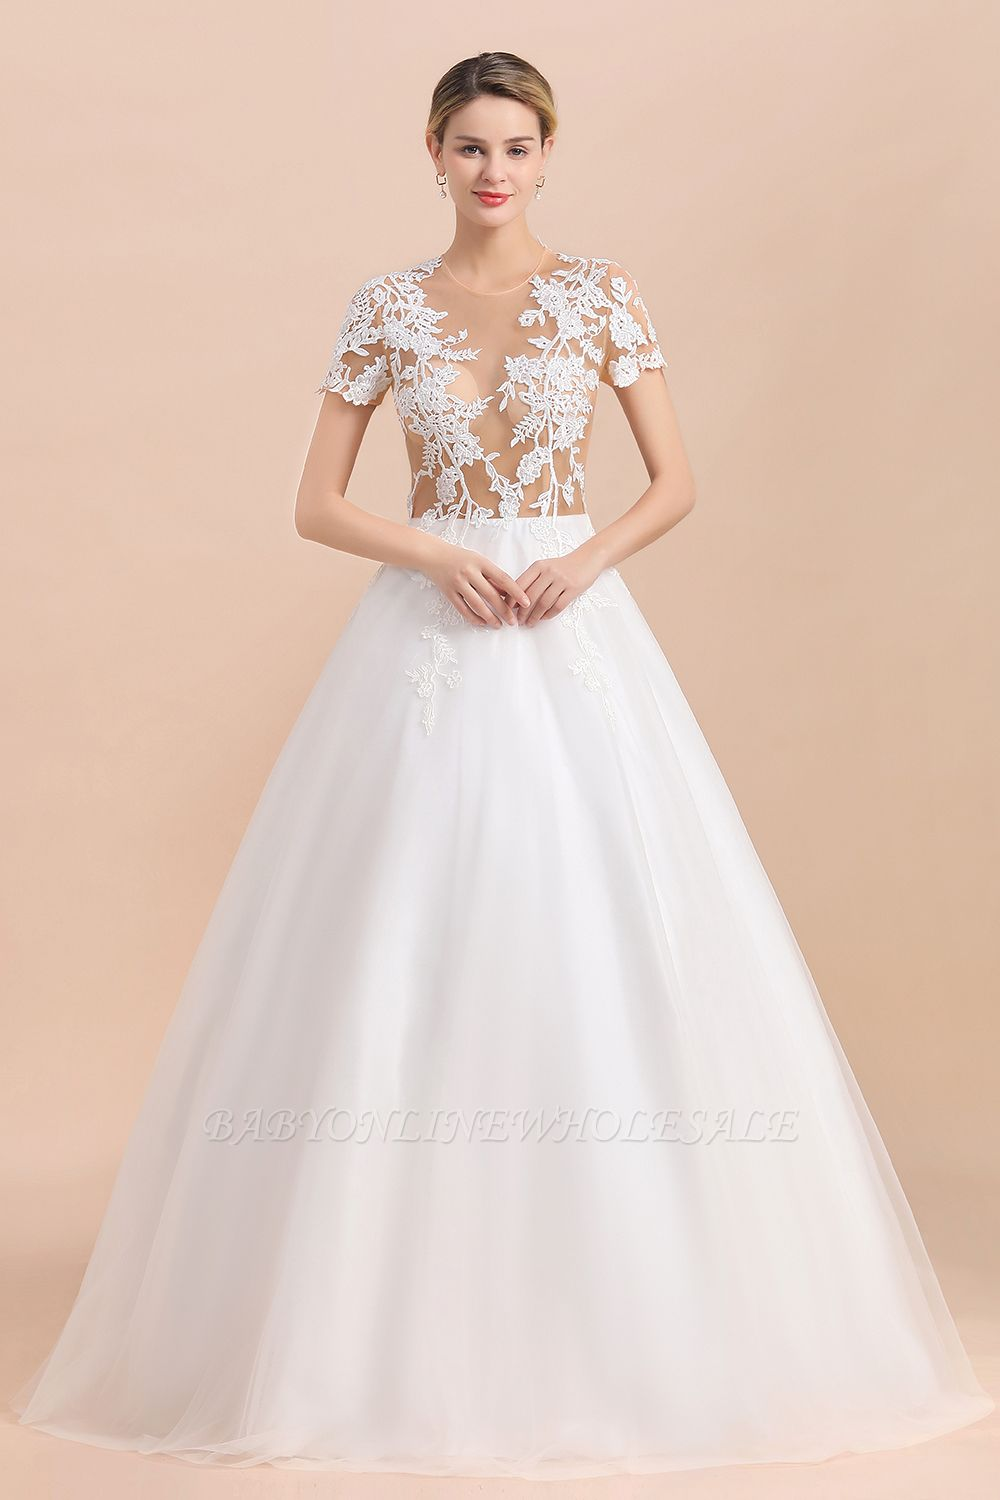 Elegant White Short Sleeves Ball Gown Buttons Lace Applique Wedding Dress